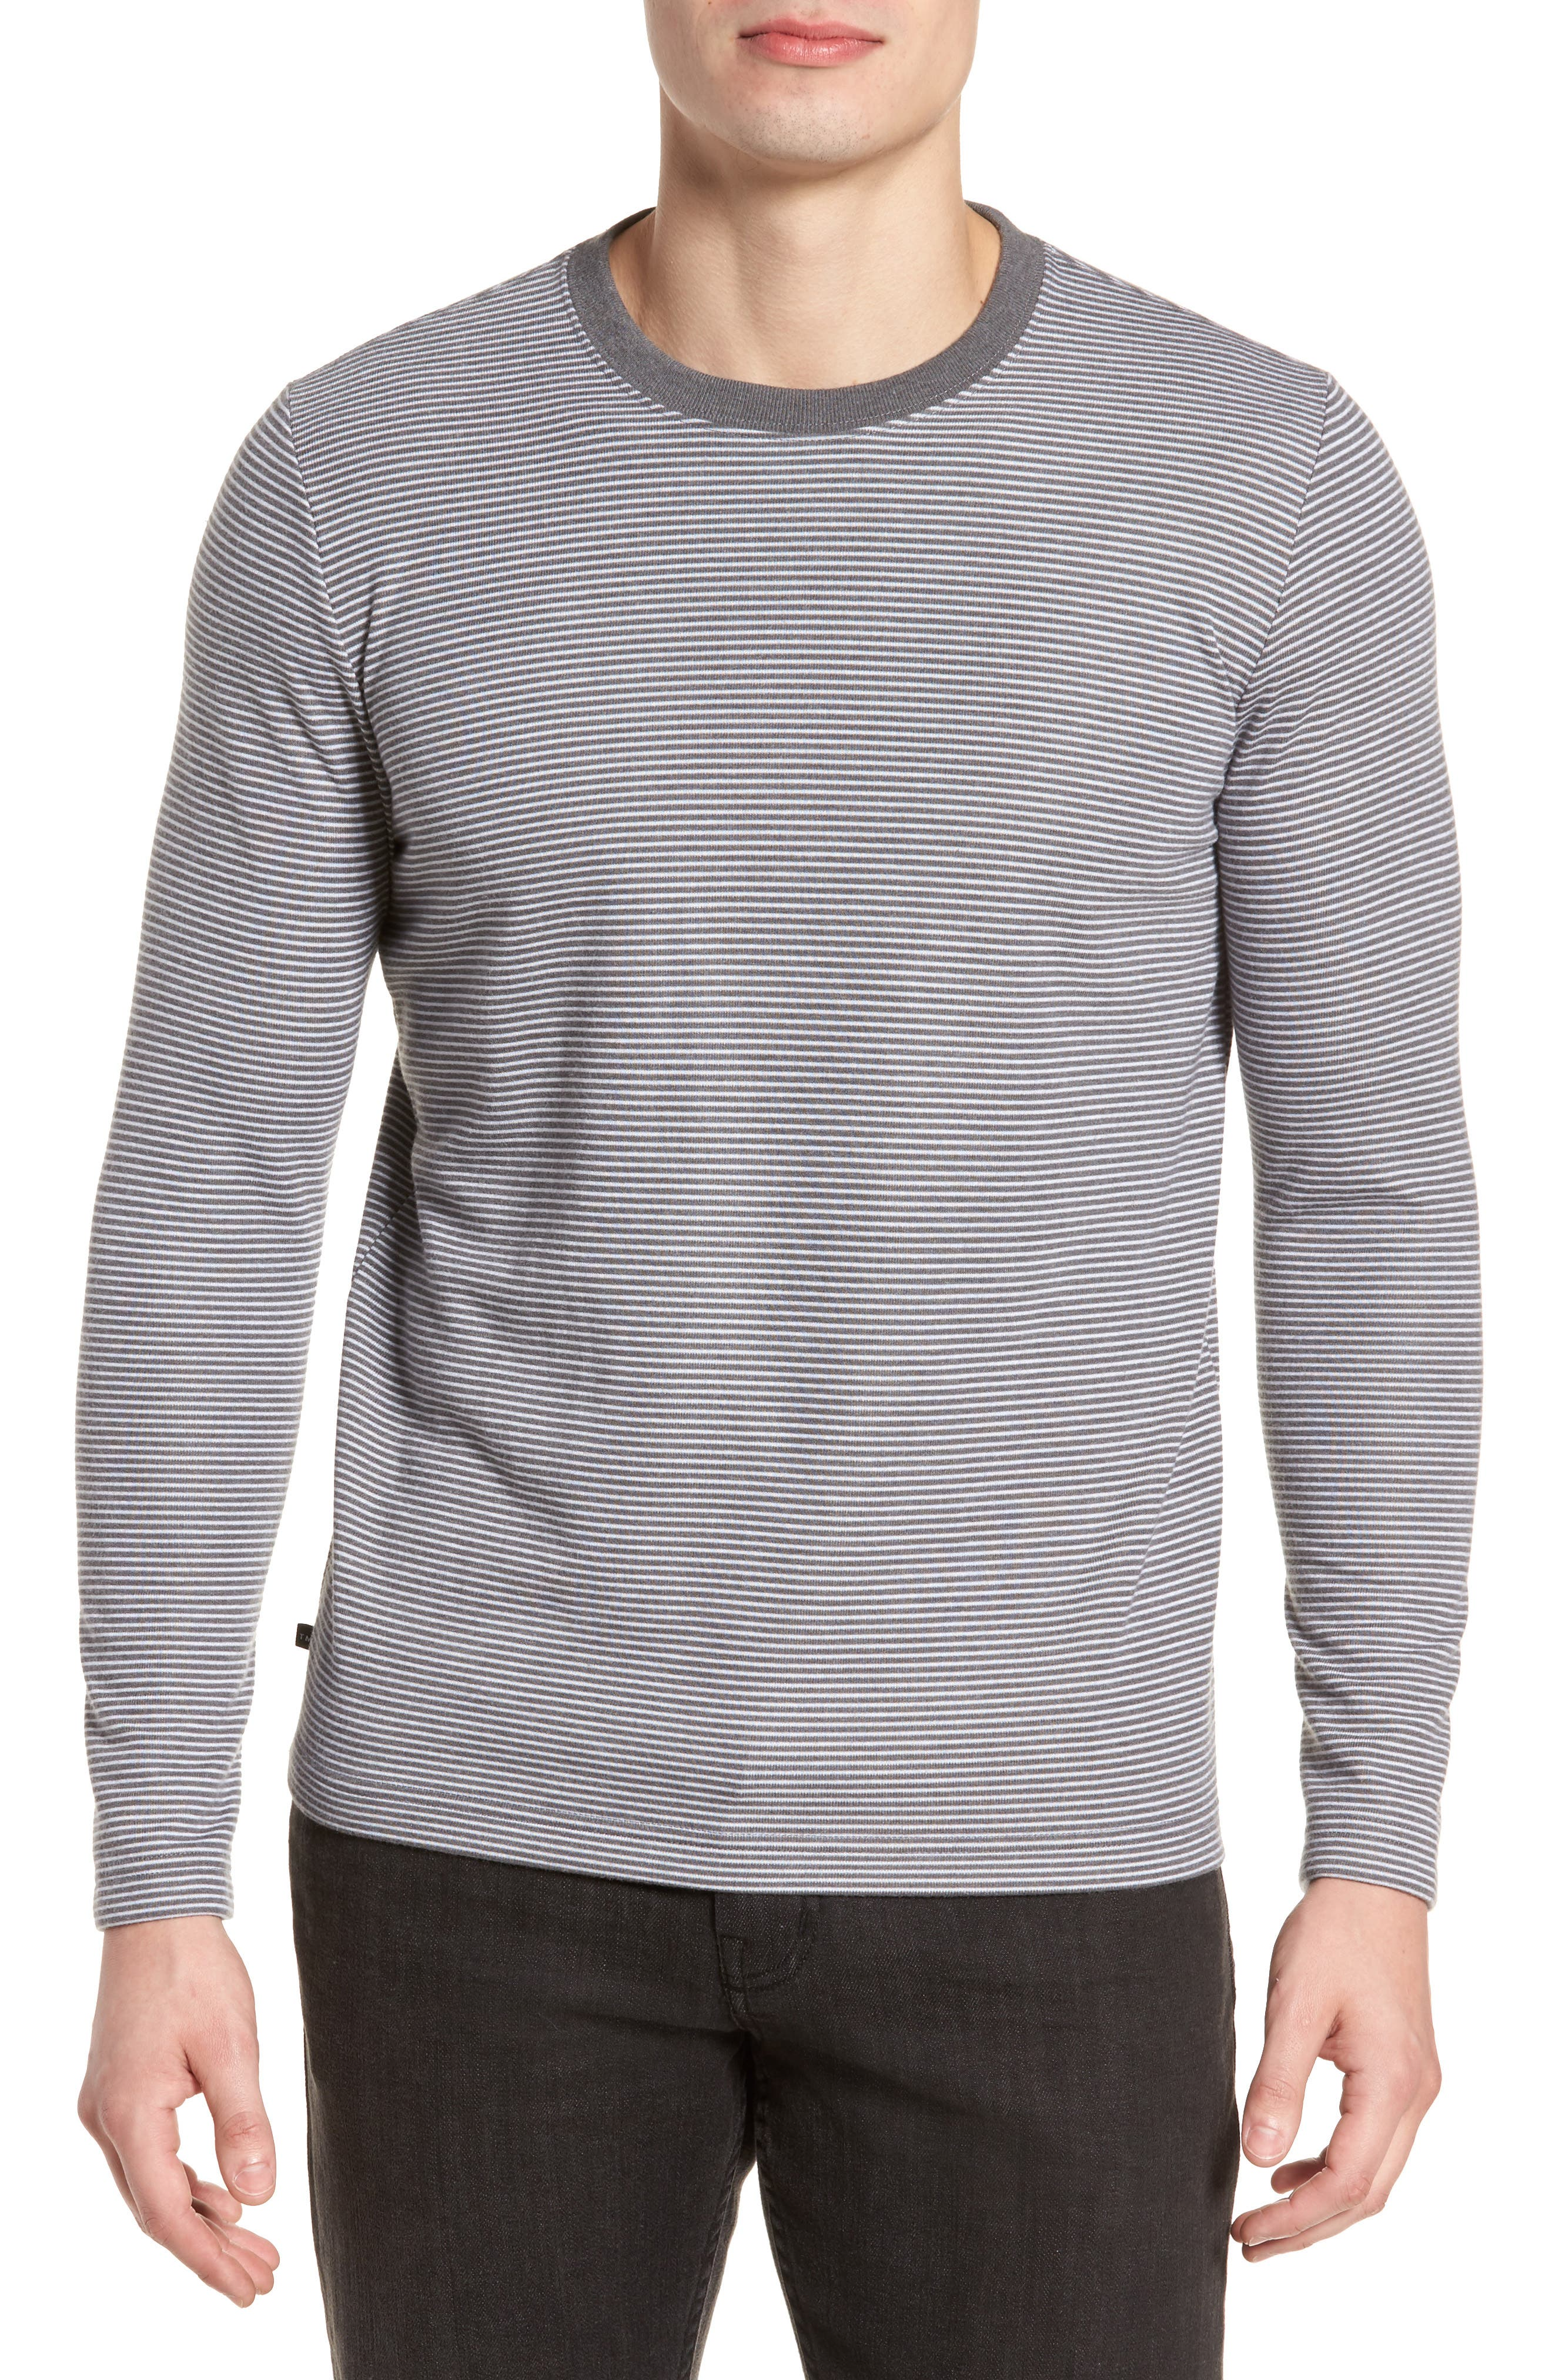 Outpost Stripe Pullover,                             Main thumbnail 1, color,